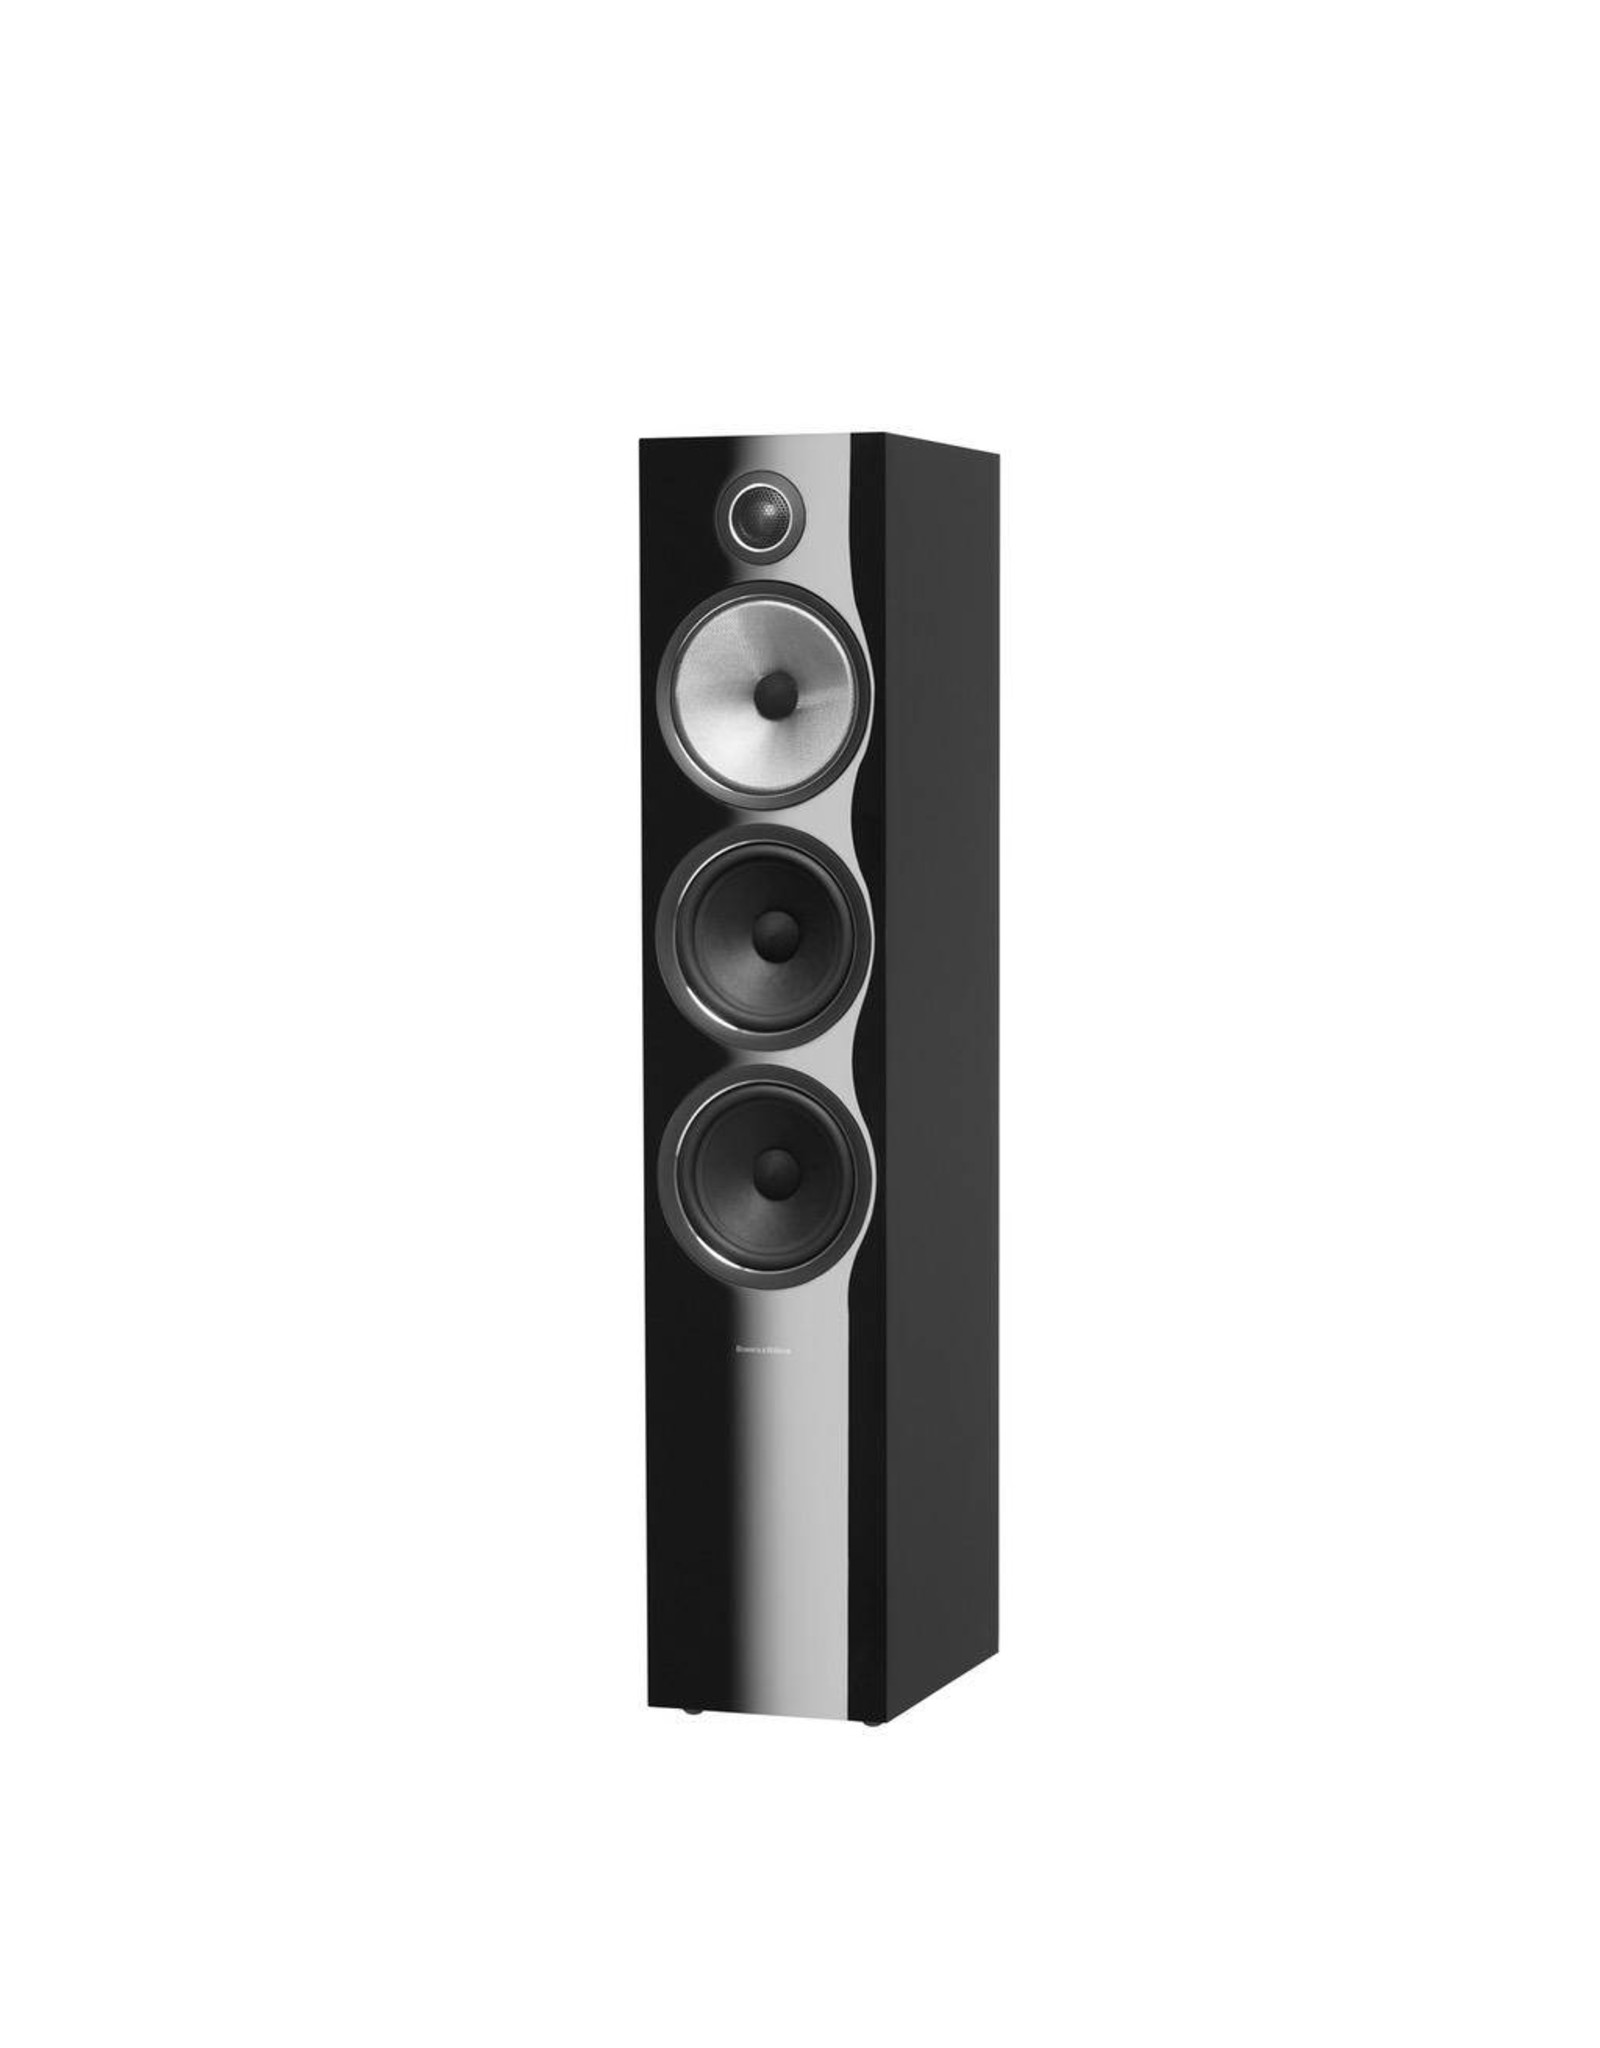 BOWERS & WILKINS 703 S2 Speakers